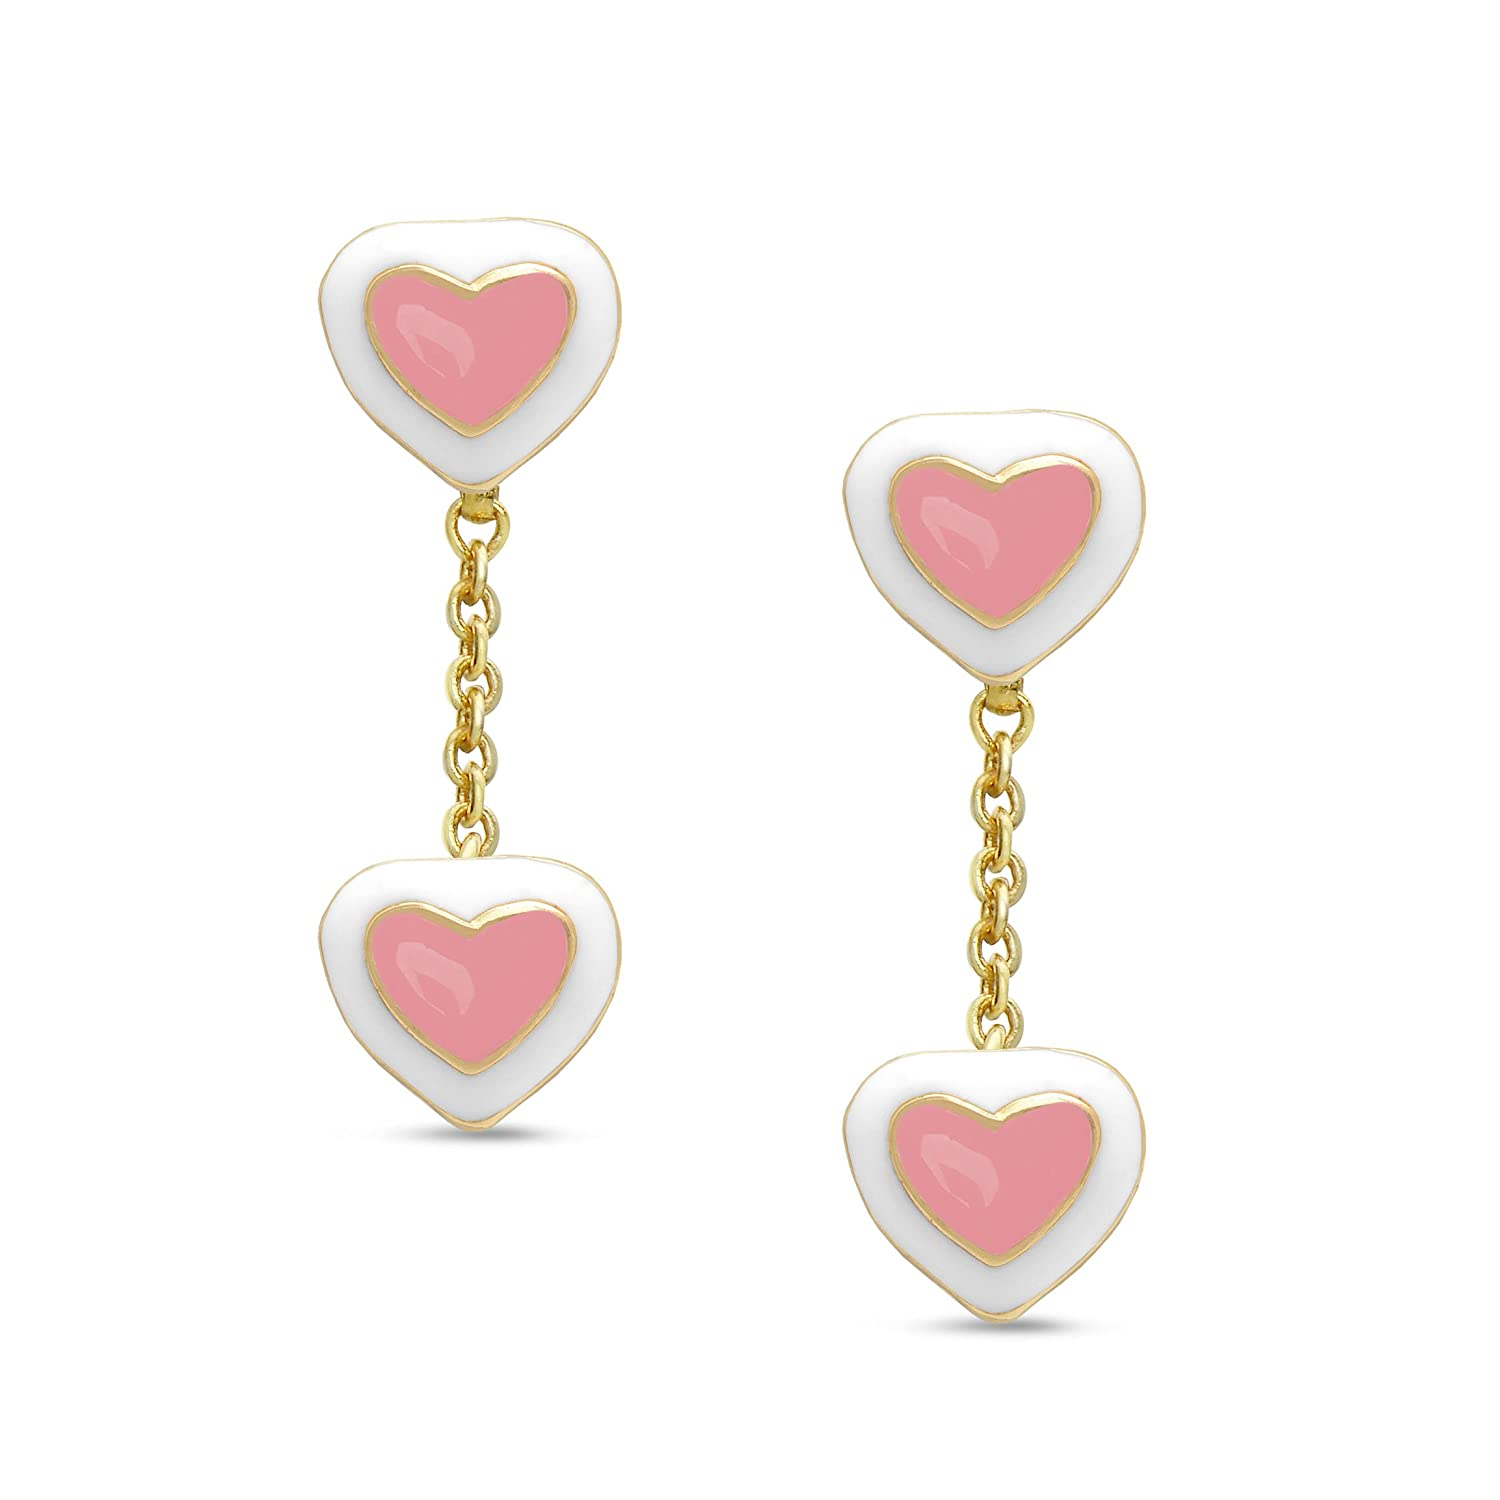 Jewelry for Girls Heart Dangle Earrings Gold Plated with Pink and White Enamel By Lily Nily